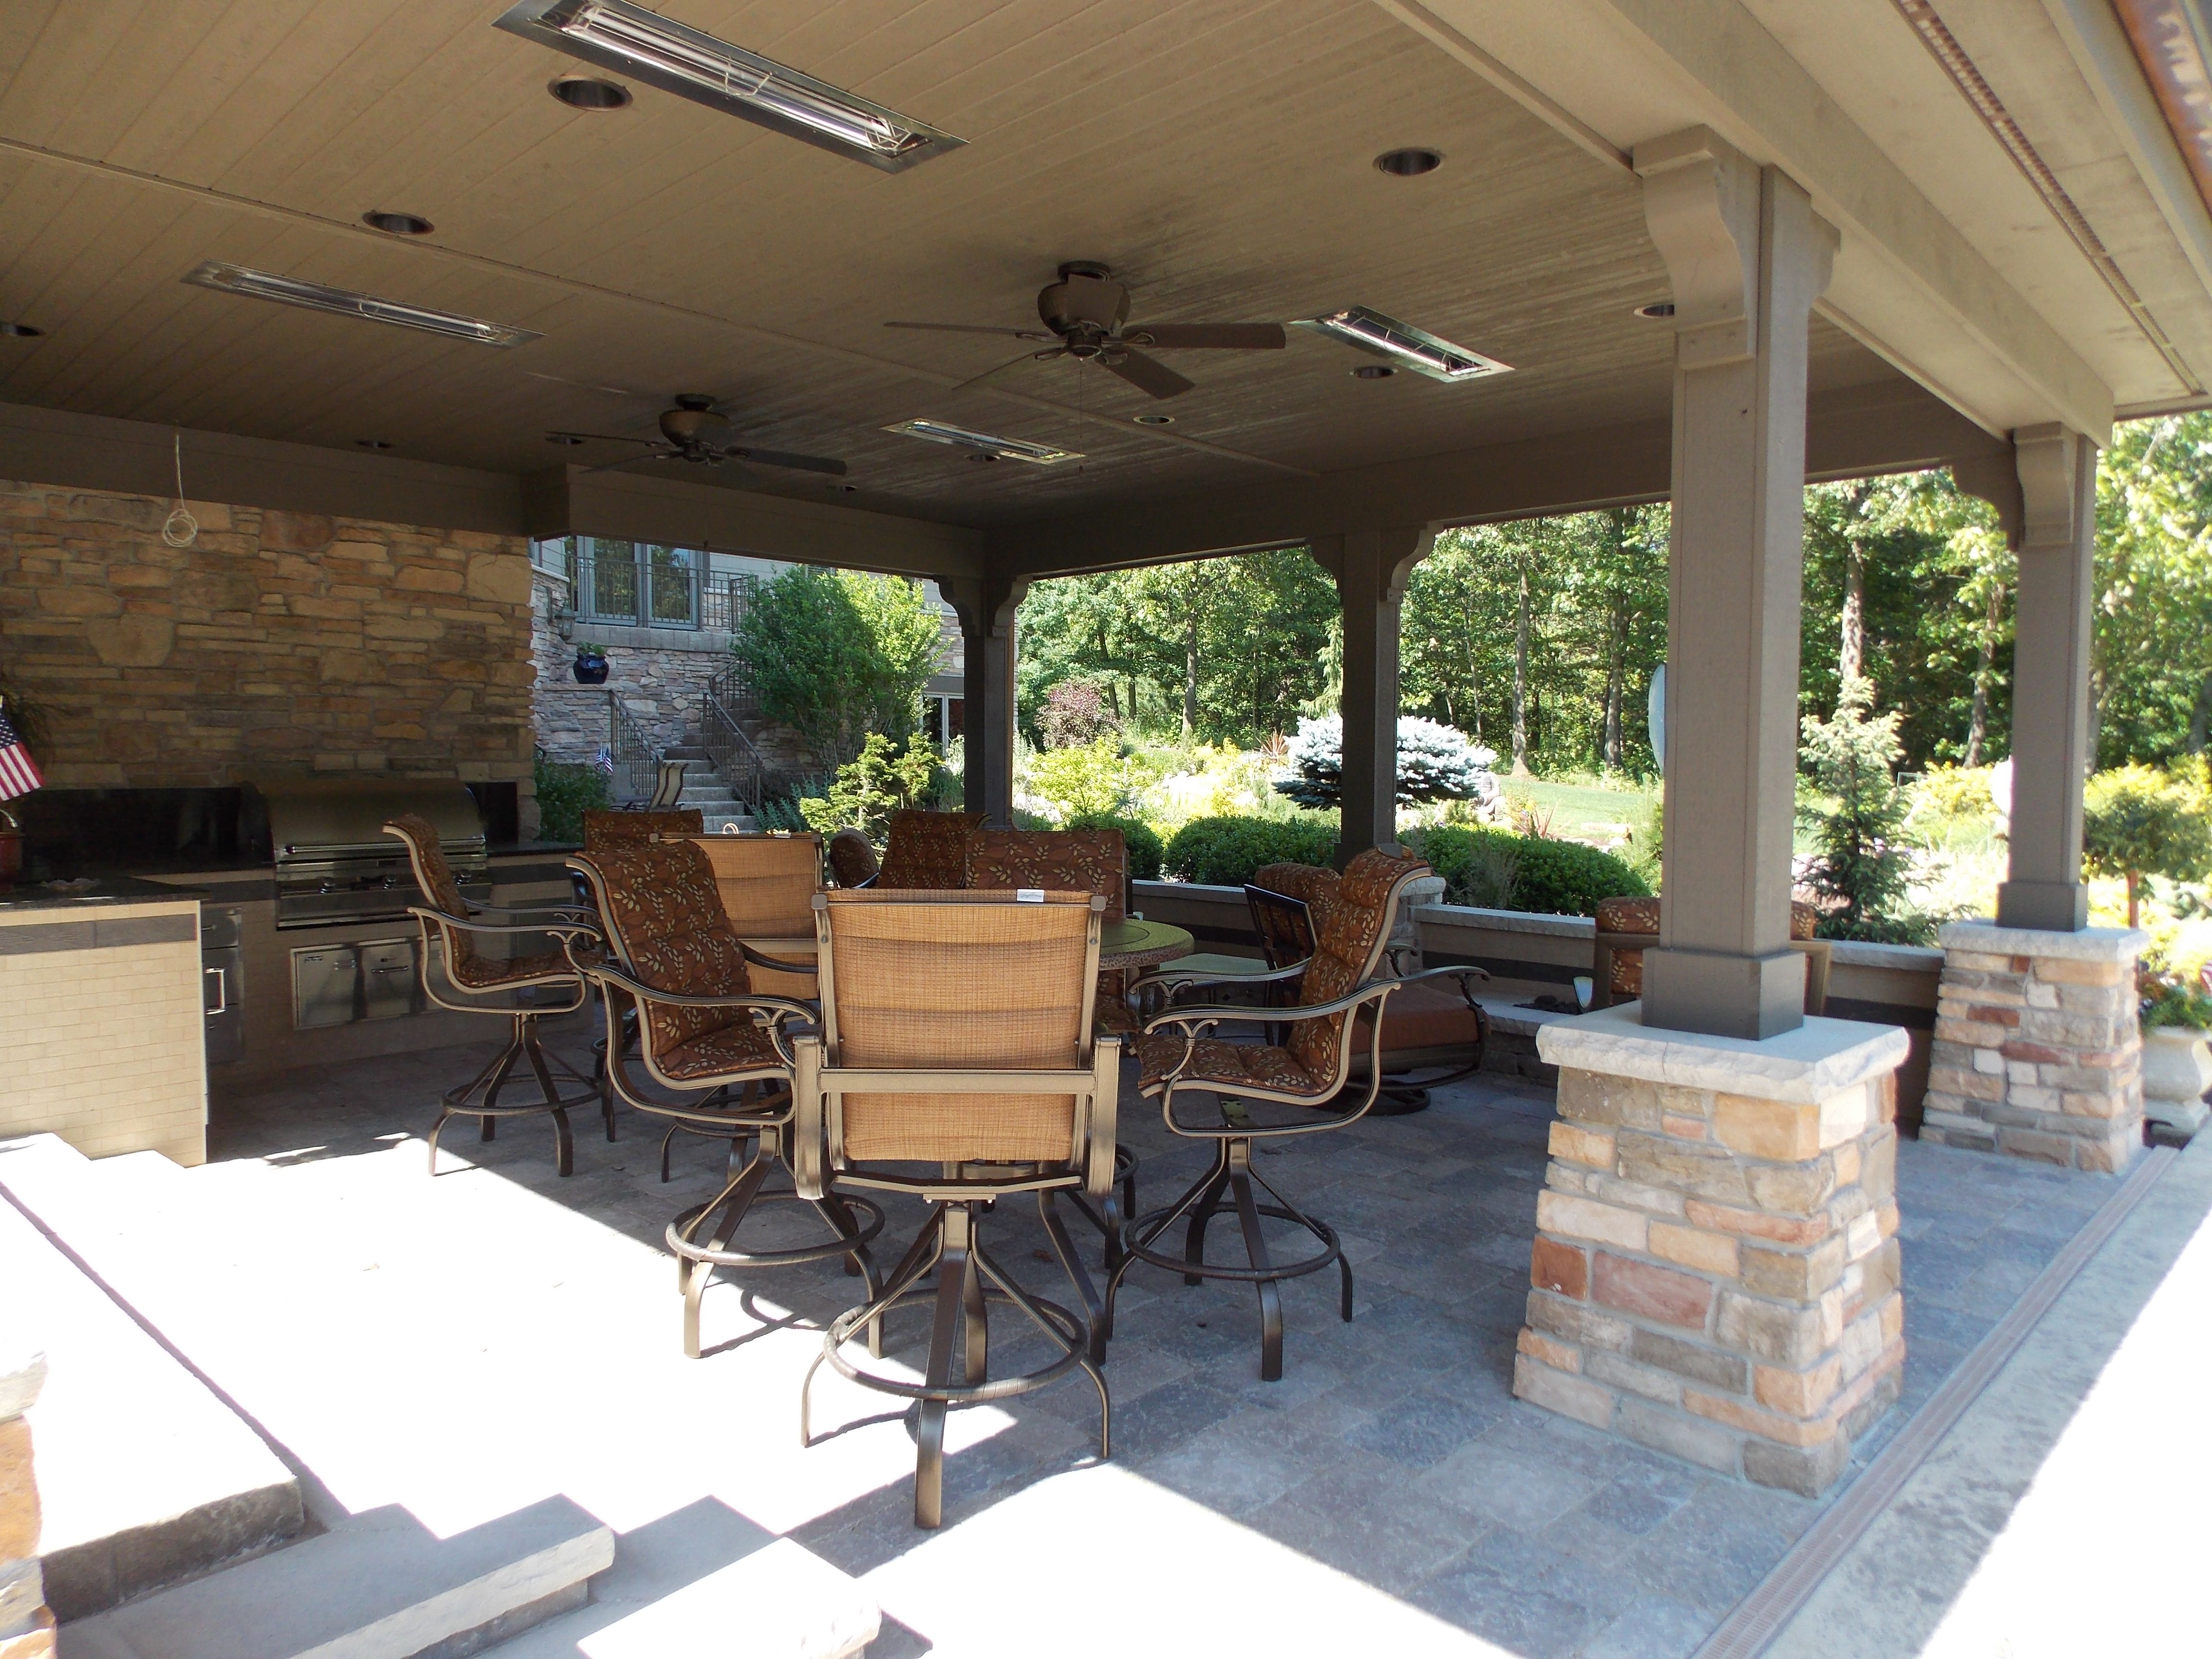 Outdoor Kitchen | Small patio spaces, Outdoor living ... on Outdoor Living Spaces Nw id=24324